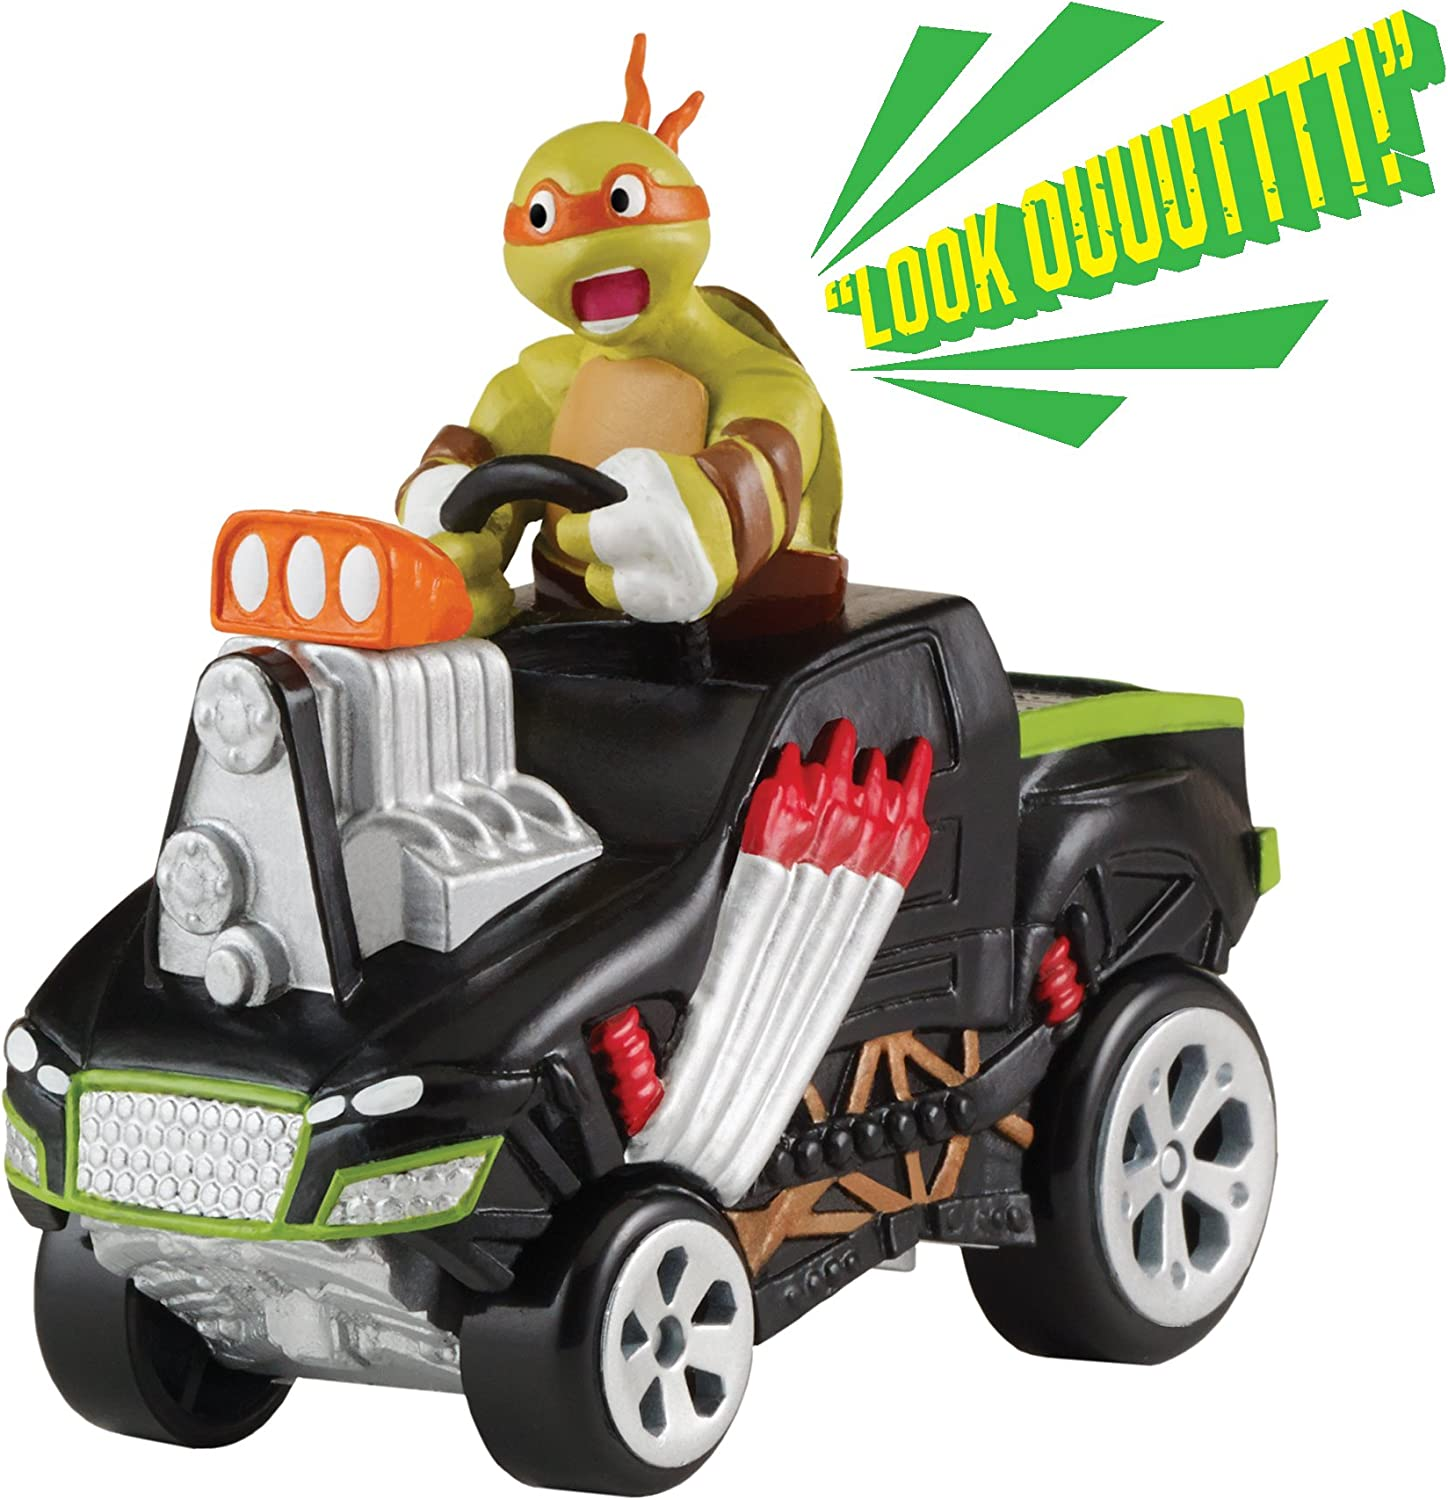 Teenage Mutant Ninja Turtles T-Machines Extreme Monster Truck with Michelangelo Vehicle with Sound